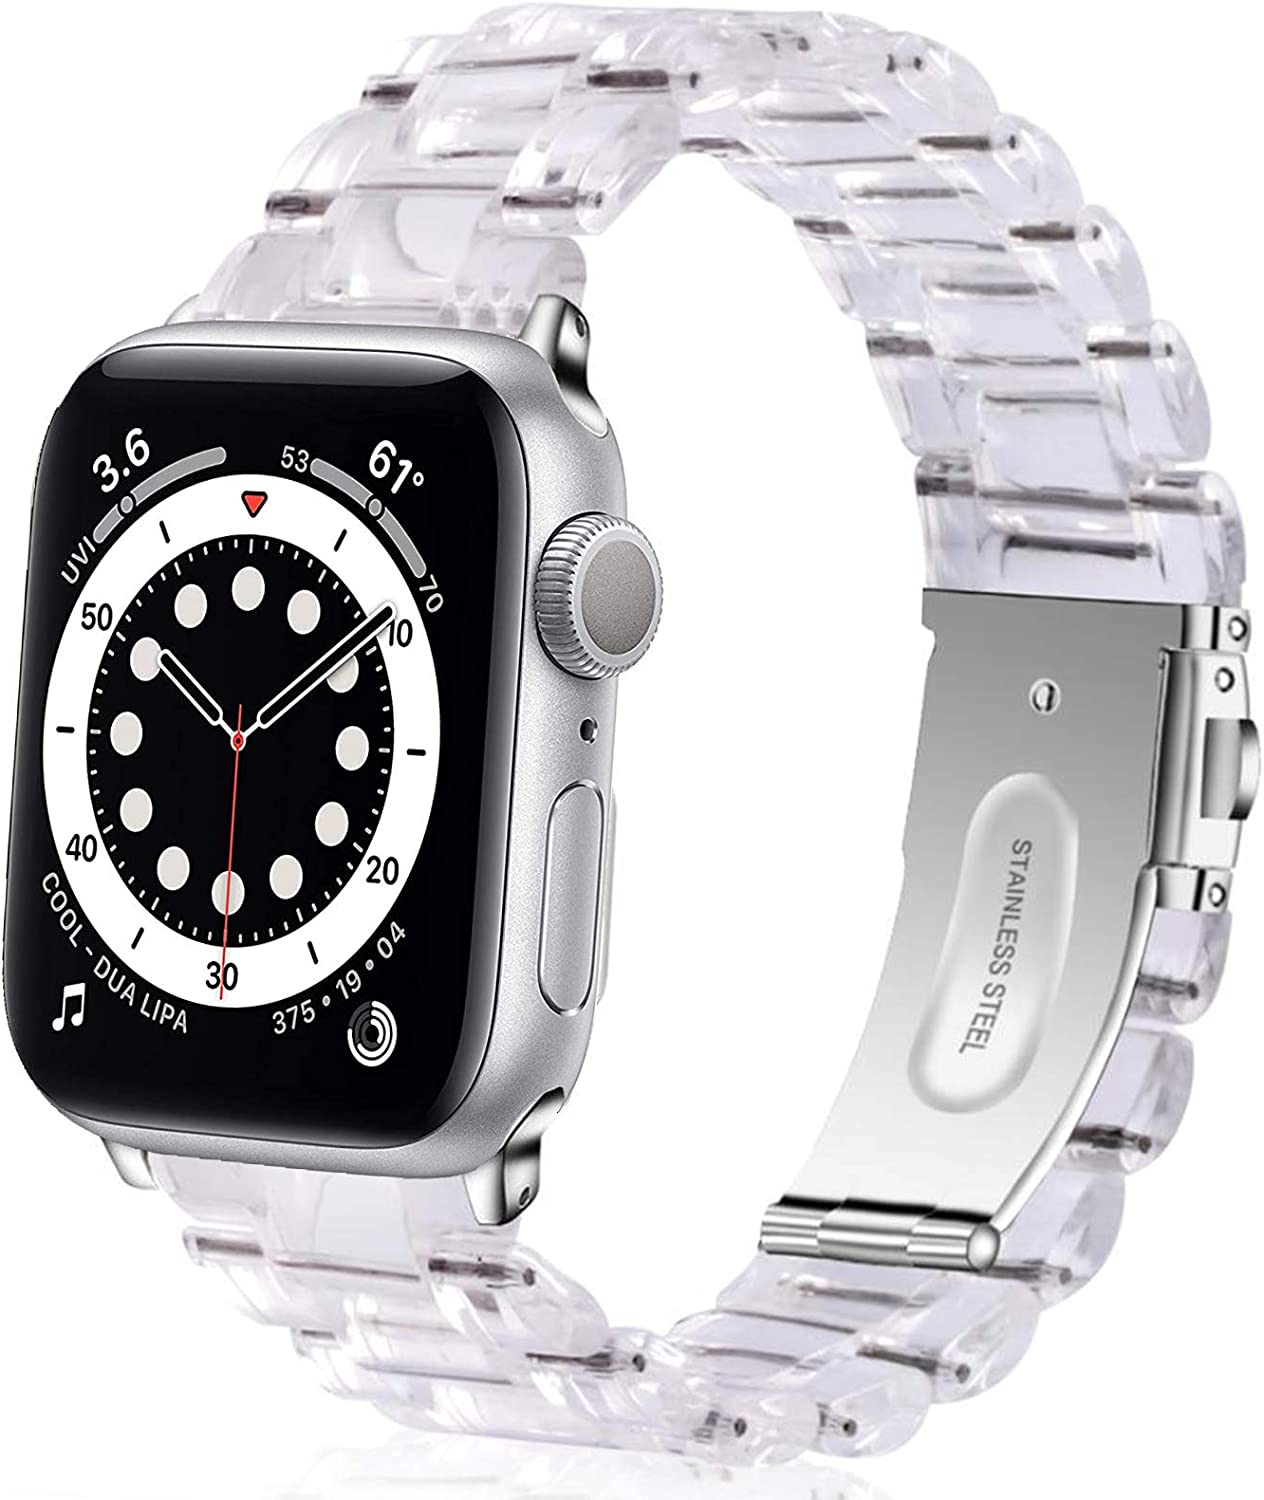 Miimall Compatible Apple Watch 38mm 40mm Resin Band Women Men Bracelet Stainless Steel Buckle Band Strap for Apple Watch SE Series 6 Series 5 Series 4 Series 3 Series 2 Series 1 38mm 40mm(Clear)